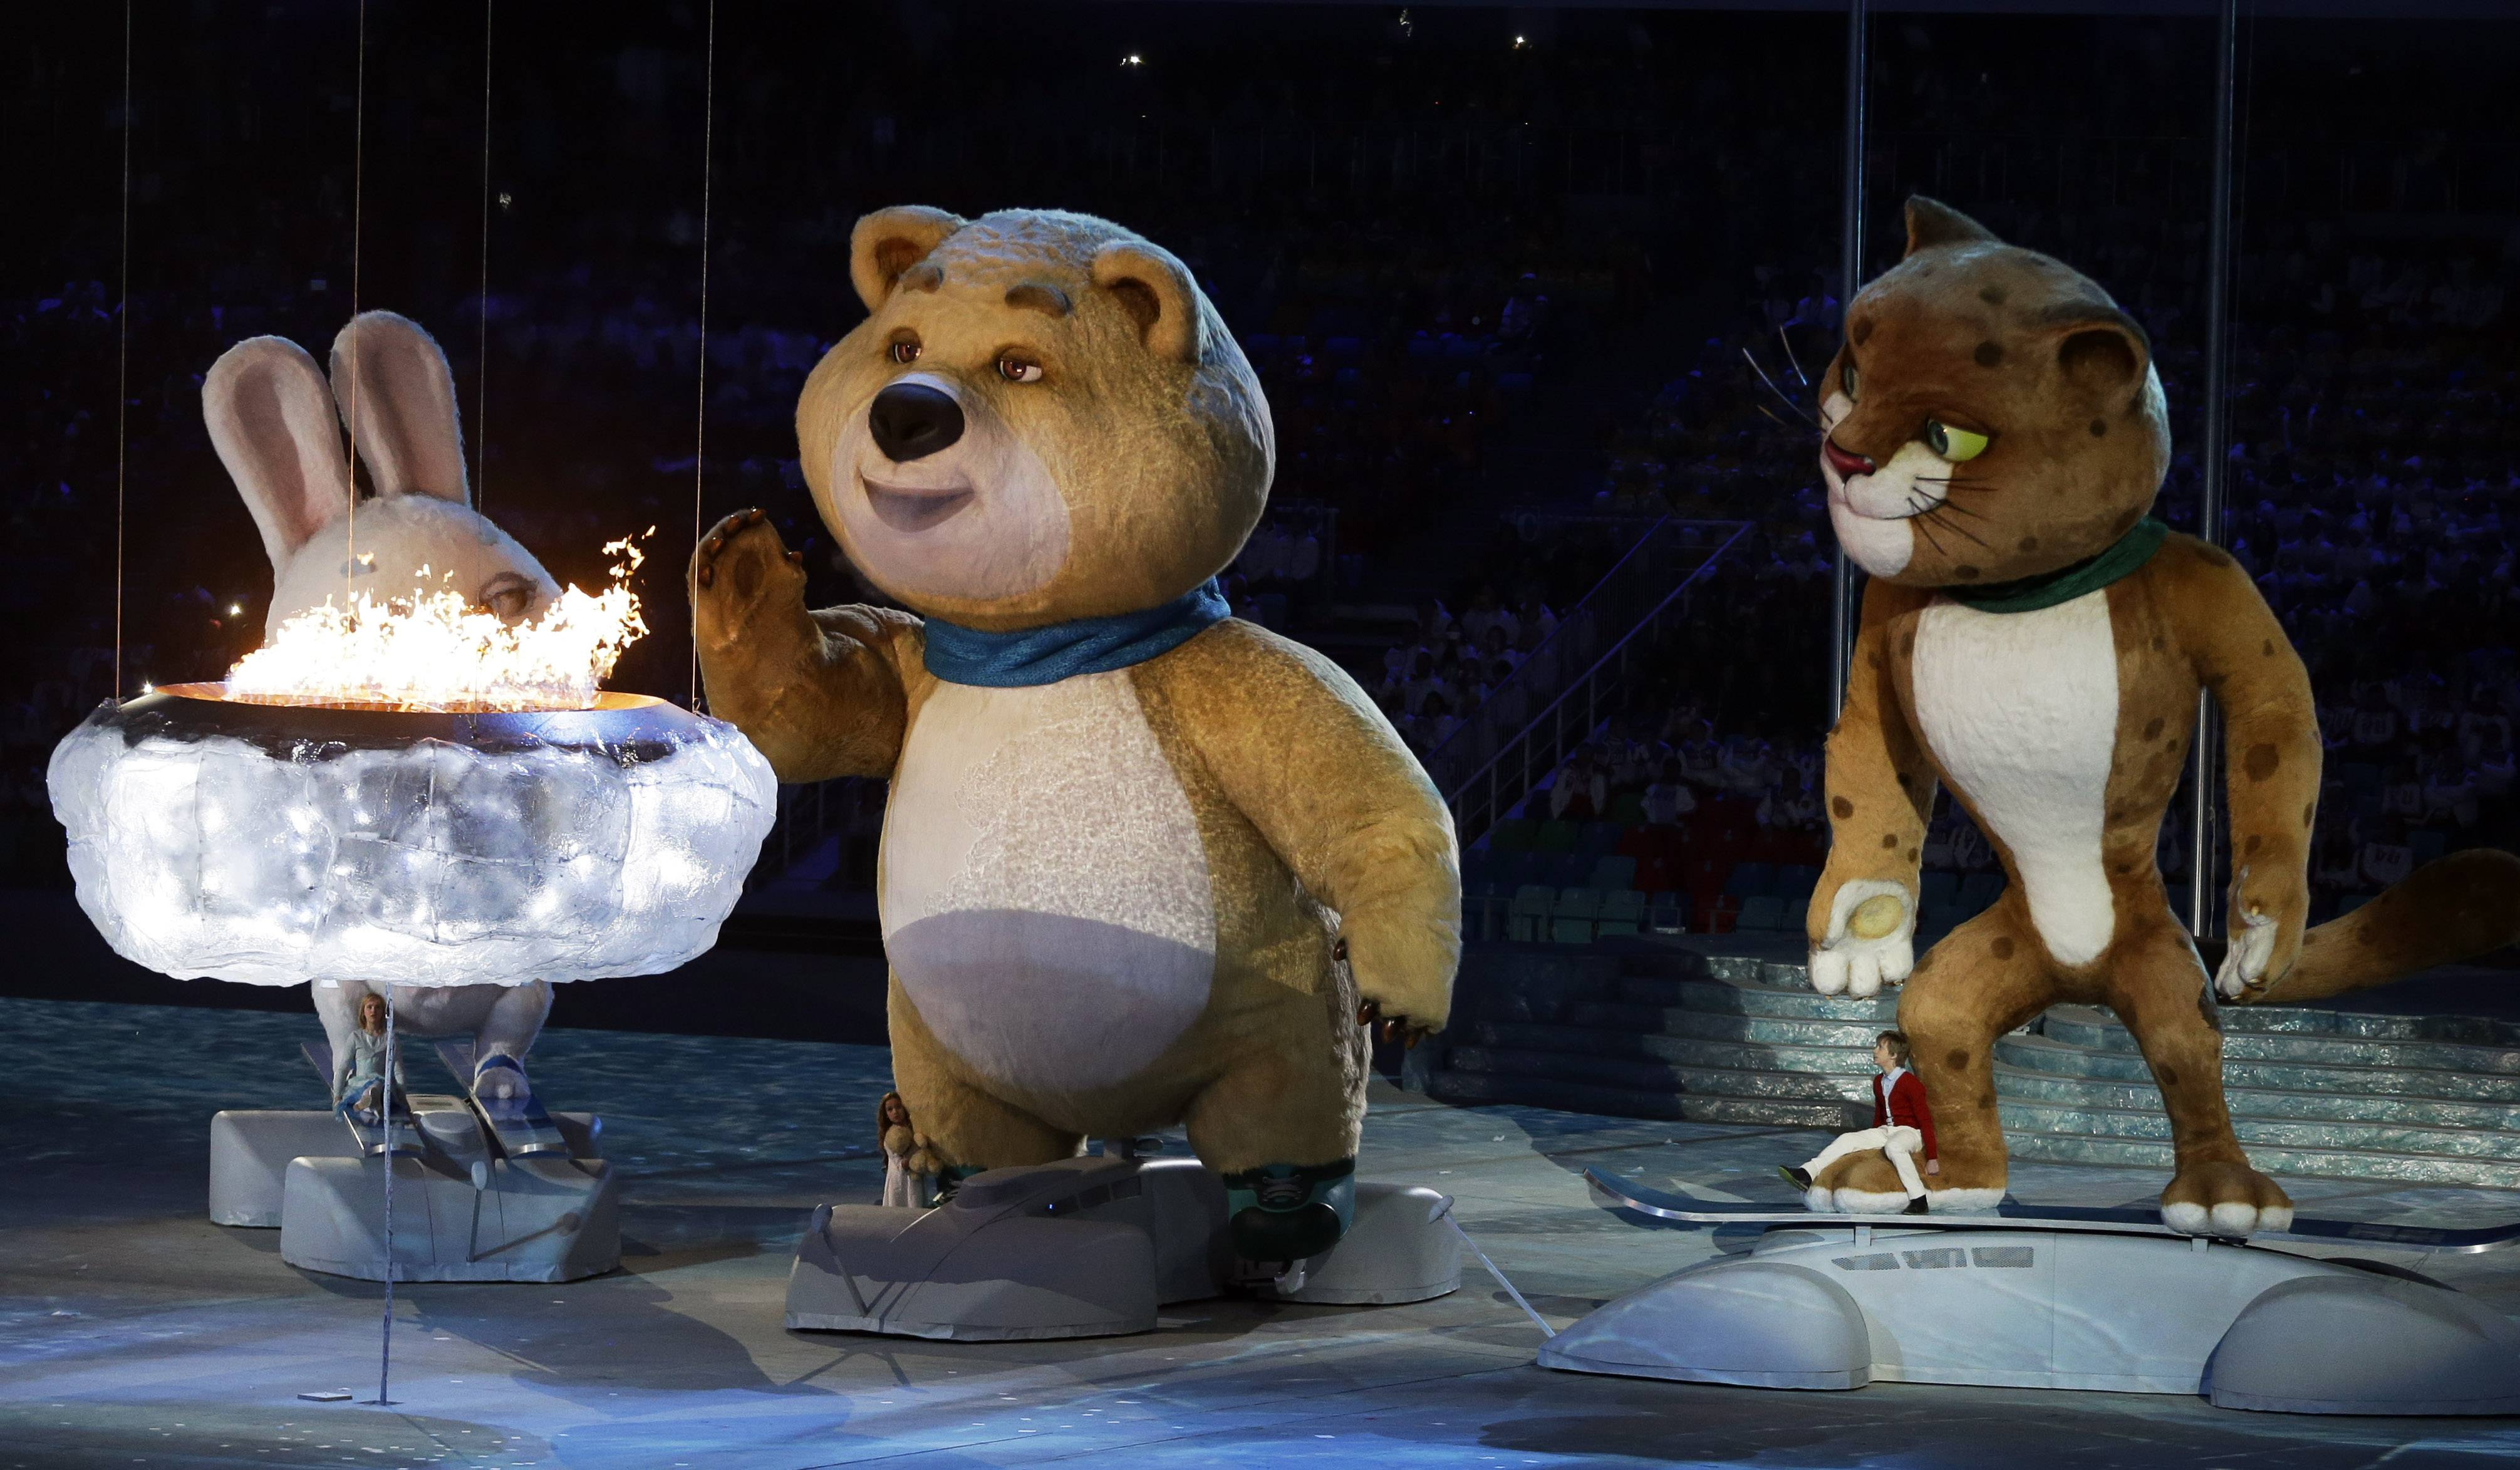 A large mascot blows out the Olympic flame during the closing ceremony of the 2014 Winter Olympics, Sunday, Feb. 23, 2014, in Sochi, Russia.